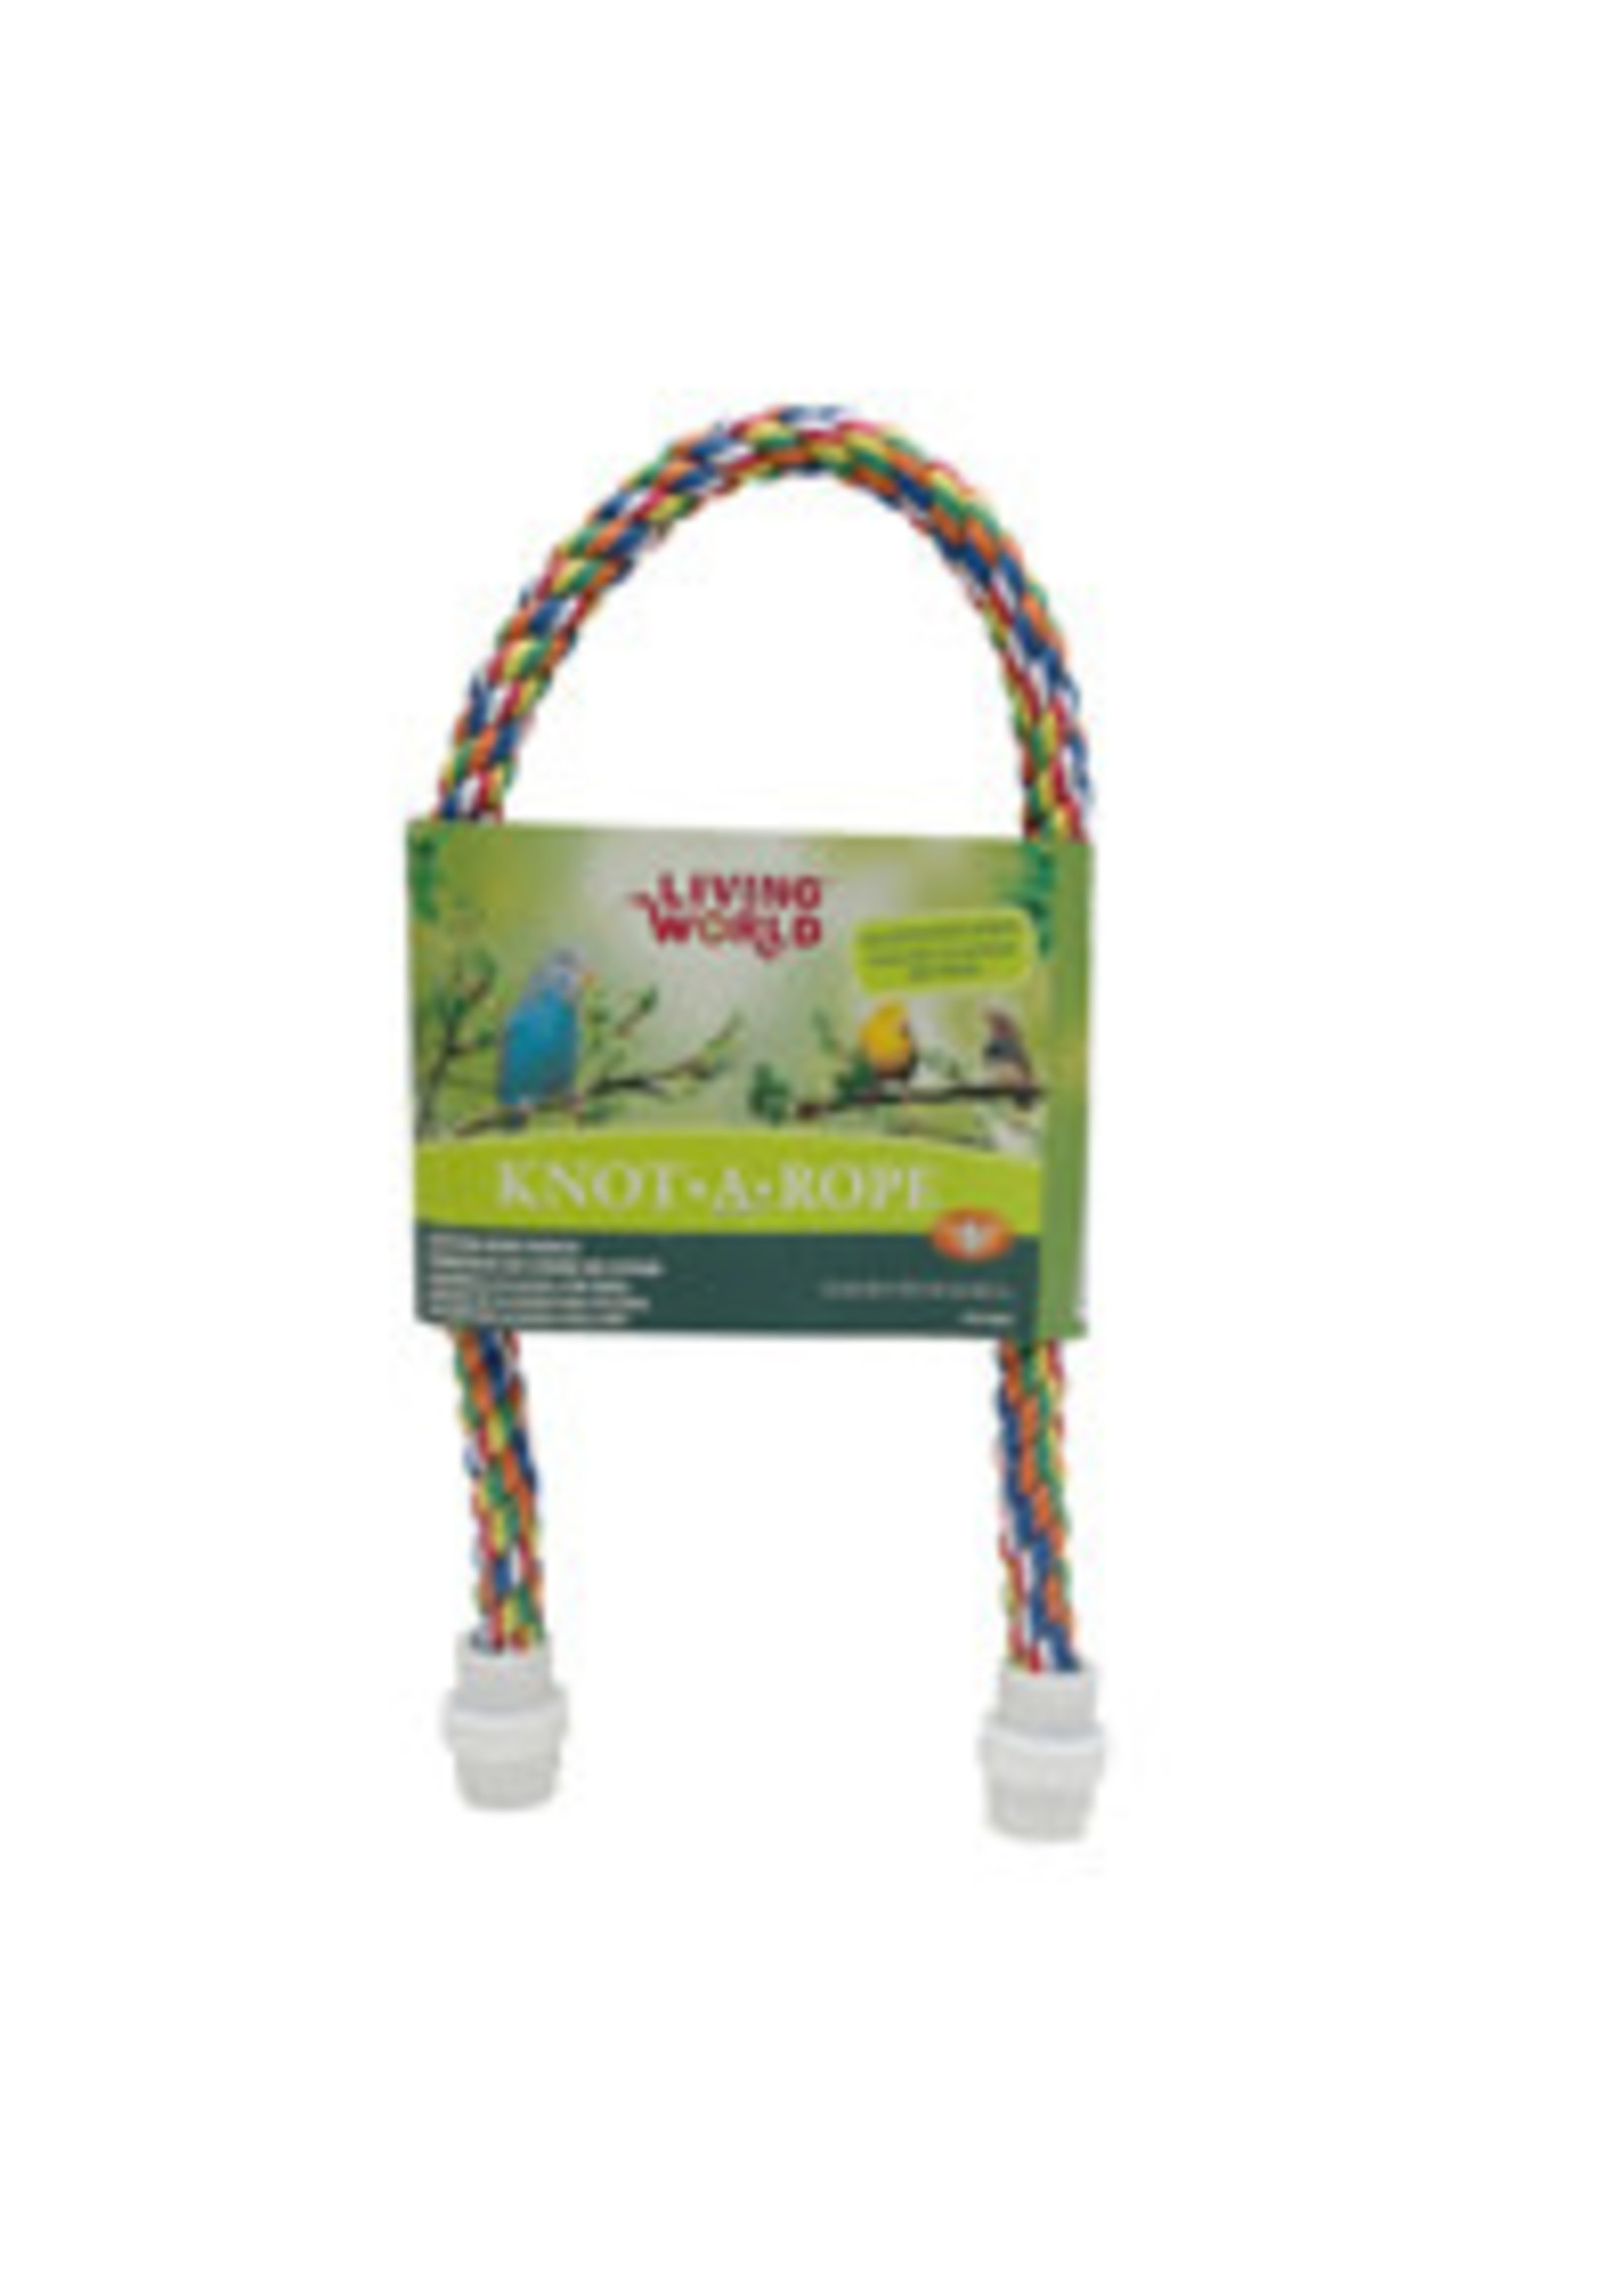 Living World Living World Knot-A-Rope